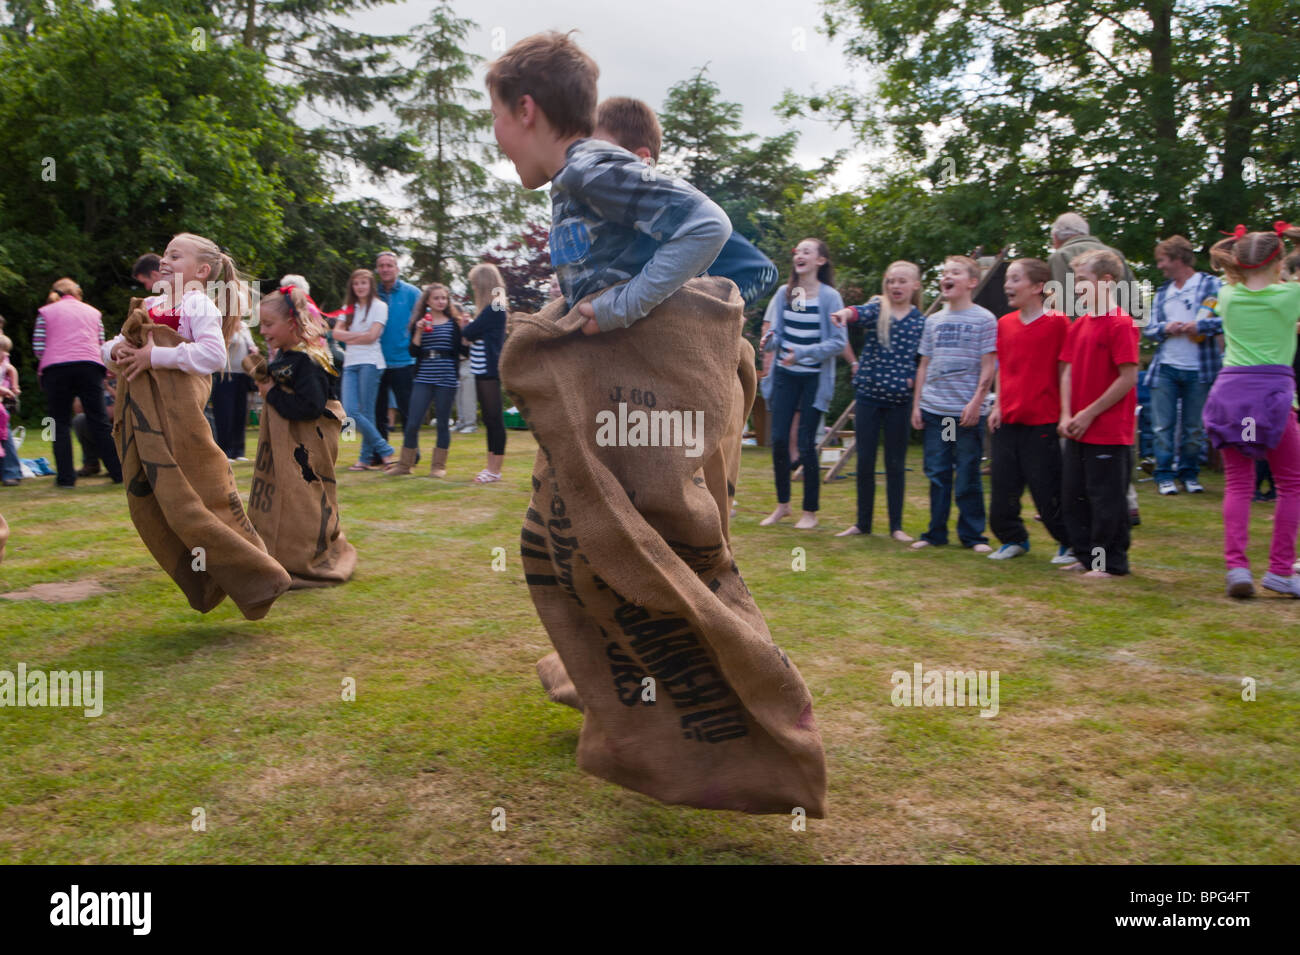 Children compete in the sack race showing movement at a village fete in Weston , Suffolk , England , Great Britain - Stock Image